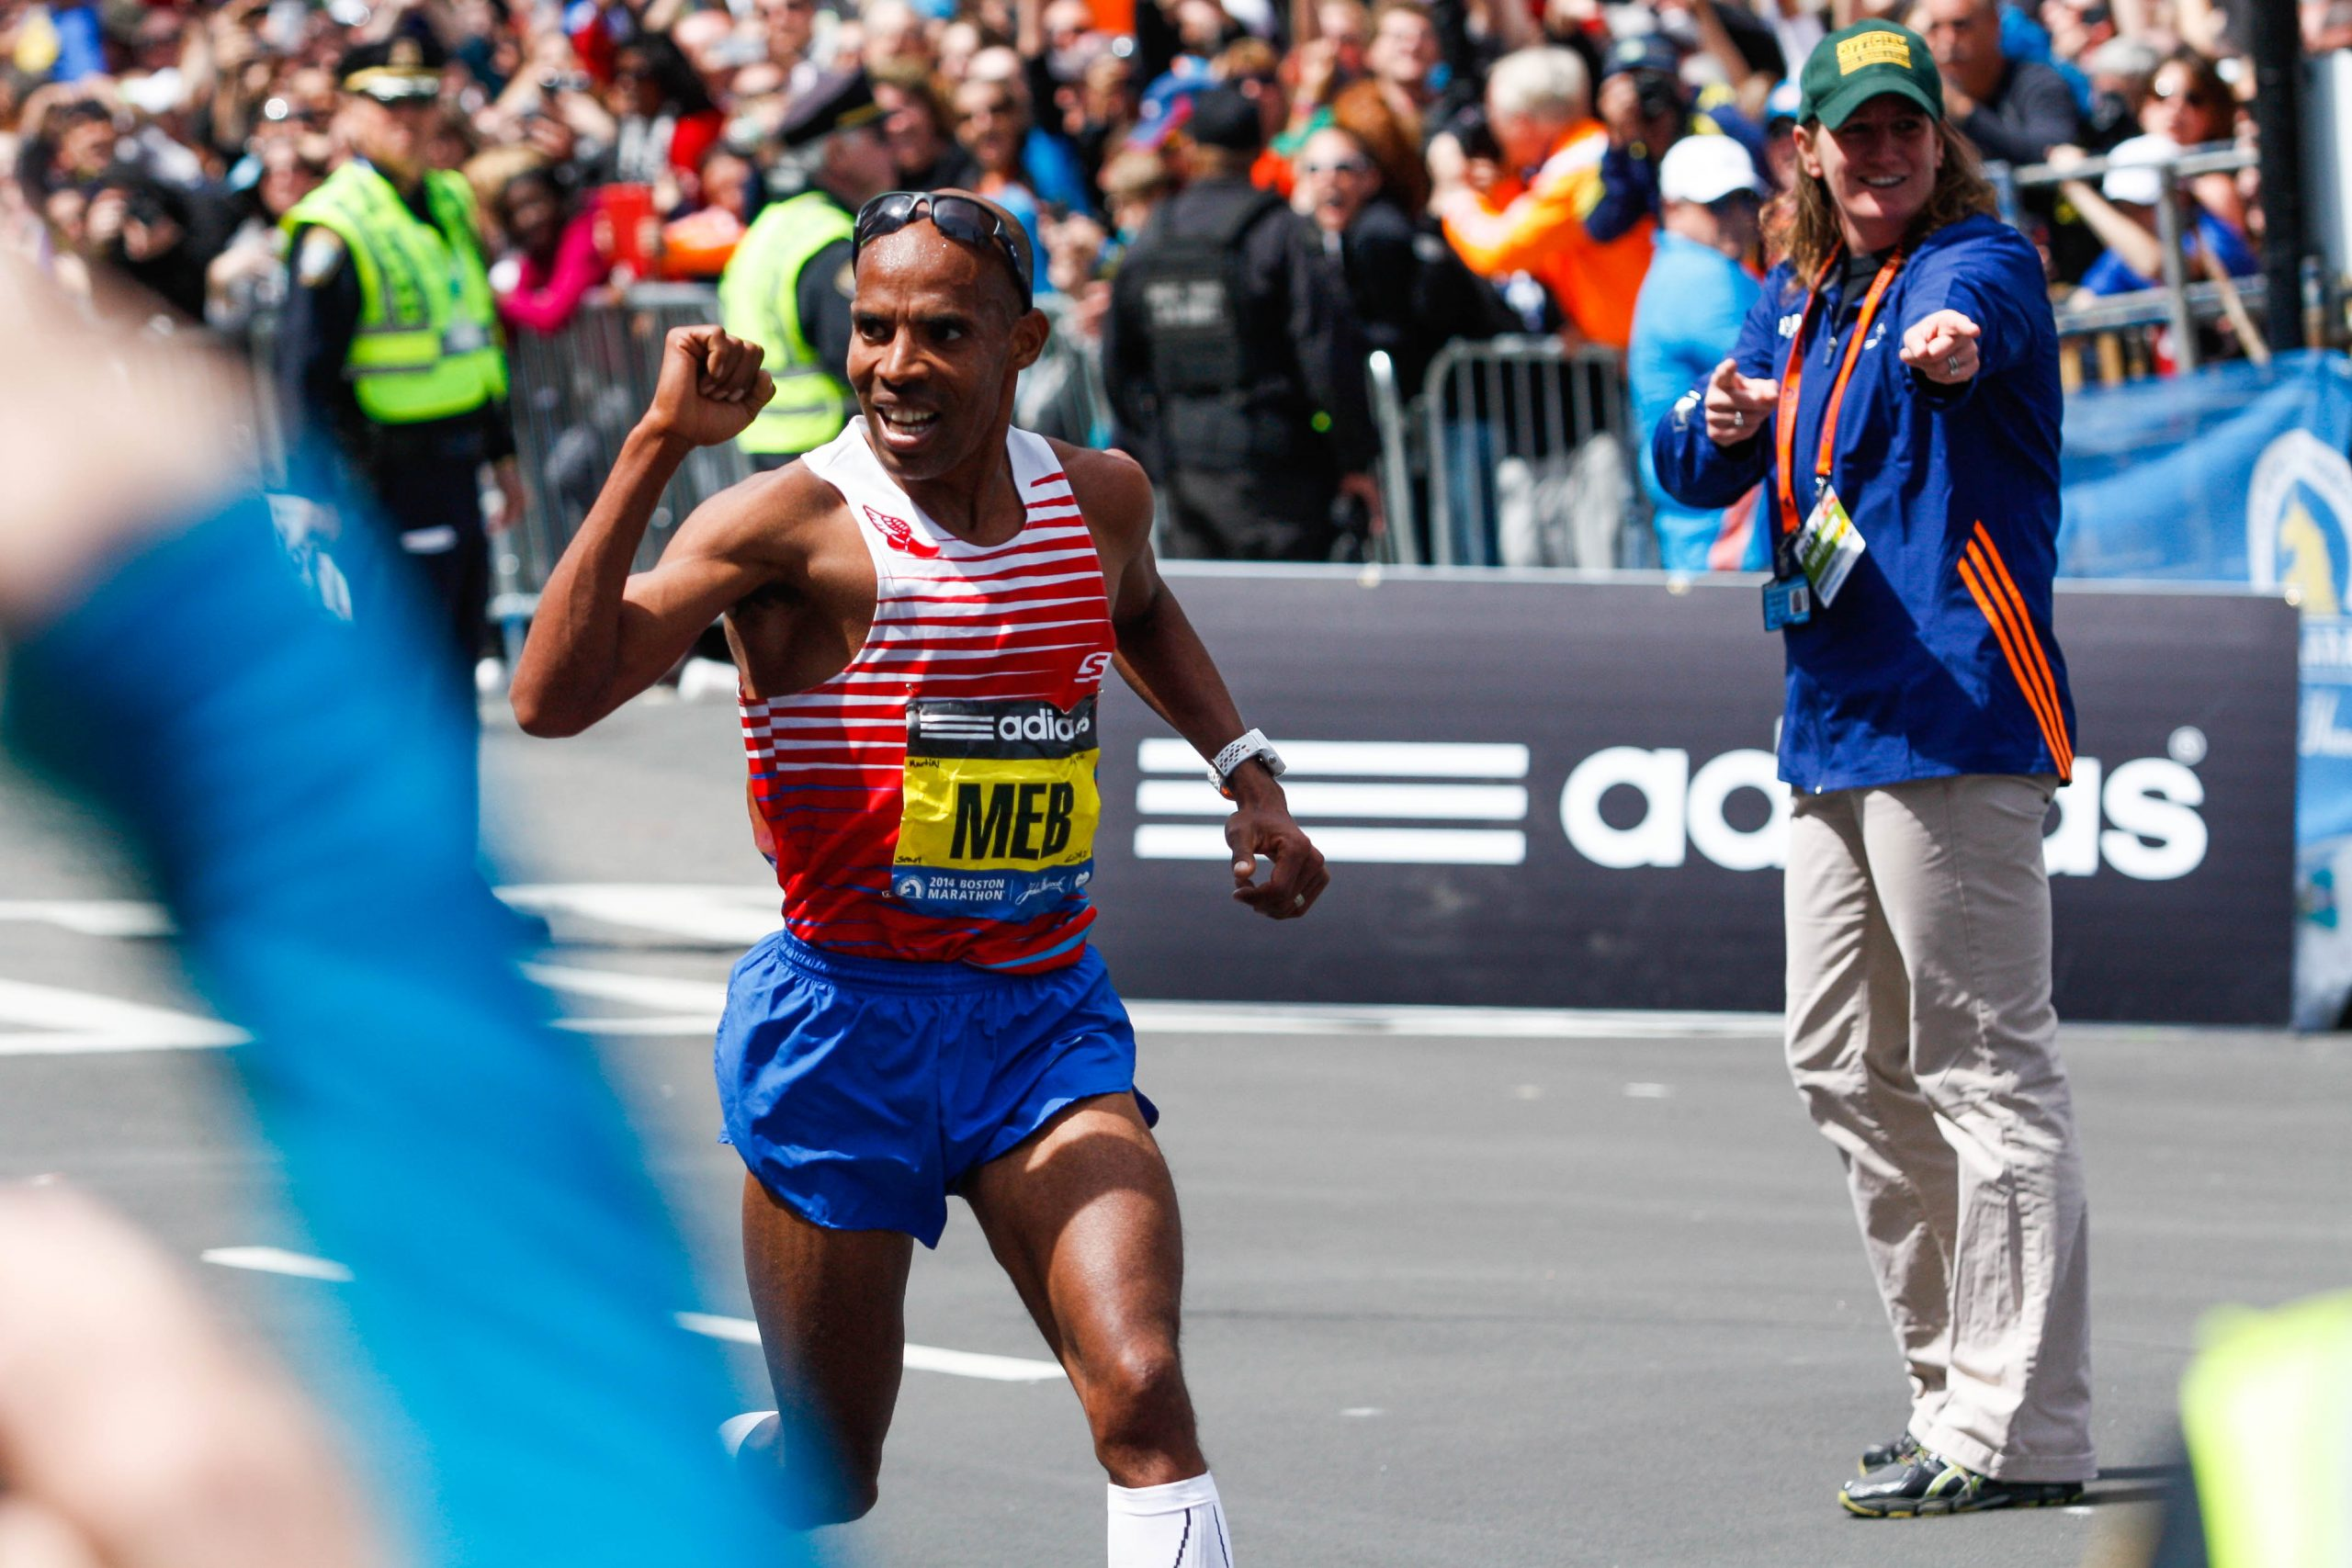 Meb Keflezighi: Take This Time To Start Working On Your Weaknesses -R4R 180